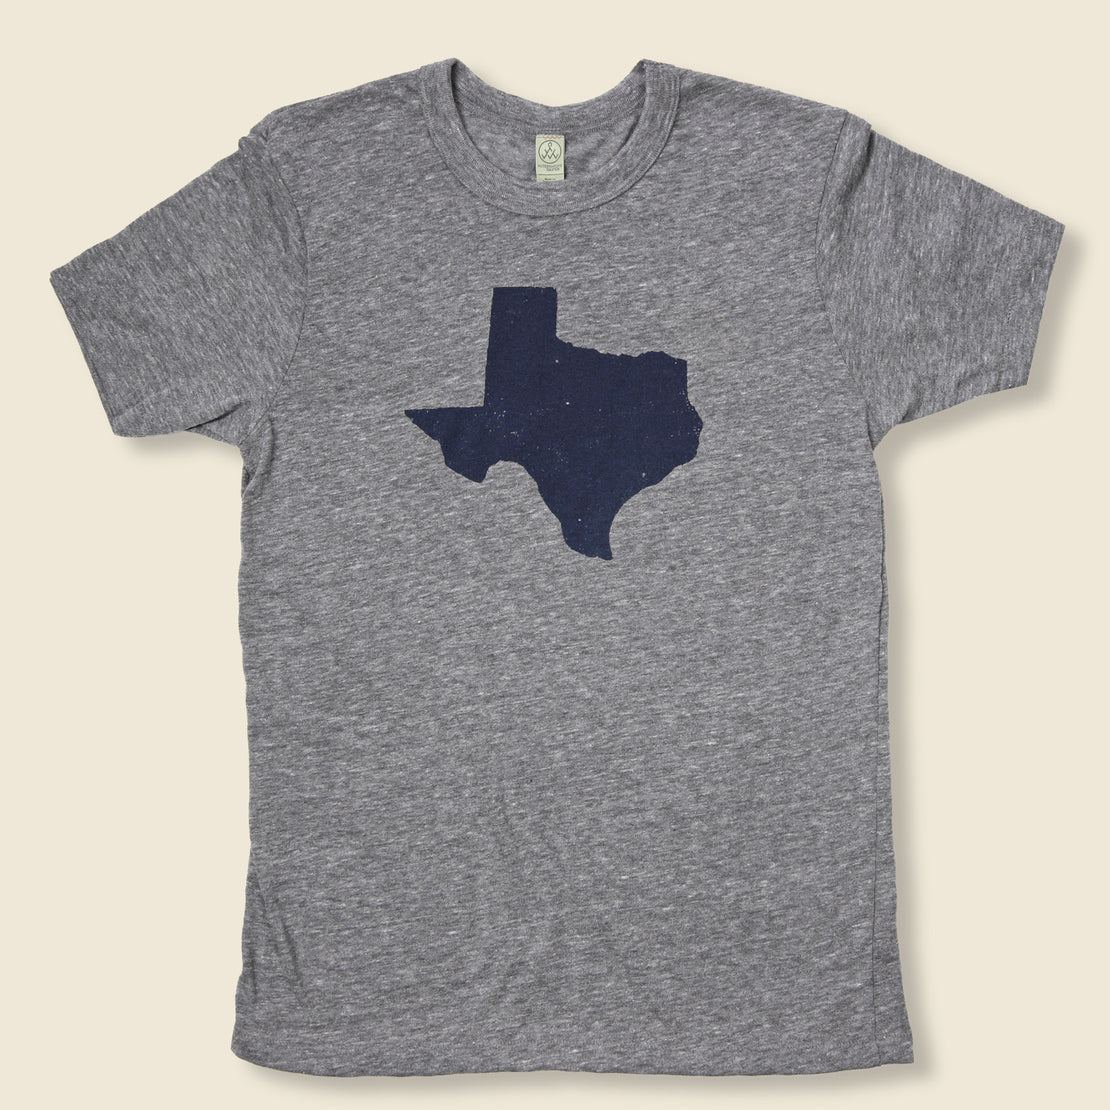 Alchemy Design Graphic Tee - Texas